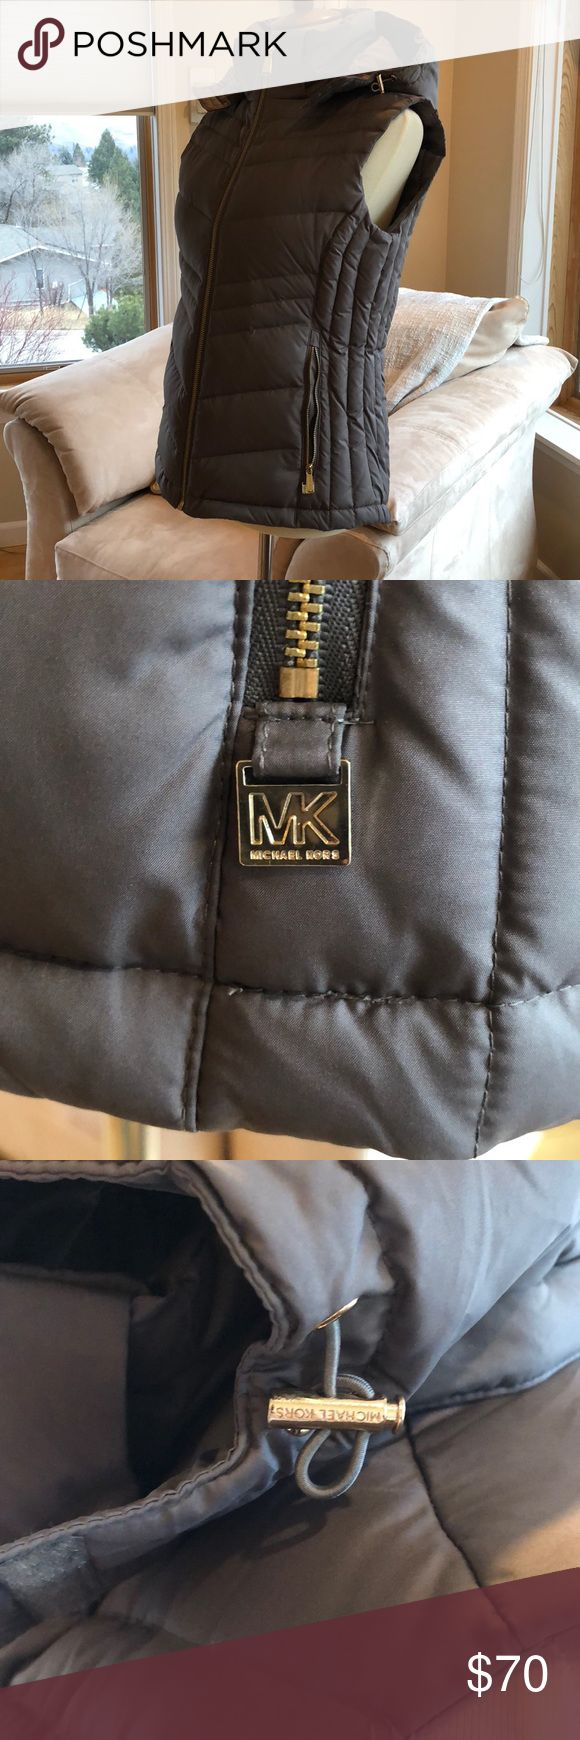 Michael Kors puffy vest Brand new WOT , never been worn . Beautiful light brownish gray color. Gold accents. Hood can be removed . Purchased at Nordstrom's . Michael Kors Jackets & Coats Vests